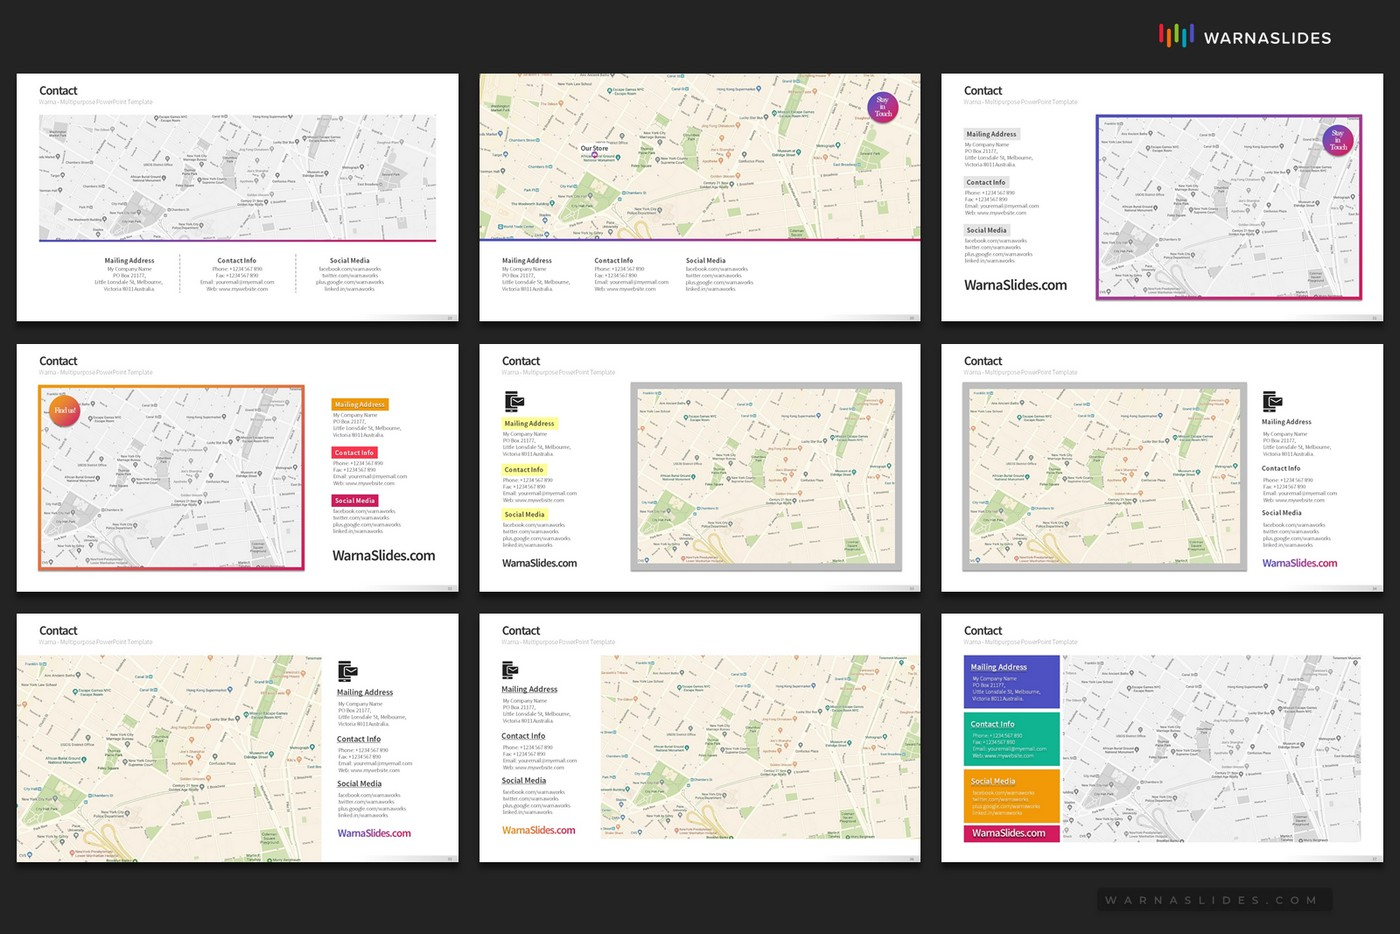 Contact-Information-Maps-PowerPoint-Template-for-Business-Pitch-Deck-Professional-Creative-PowerPoint-Icons-009